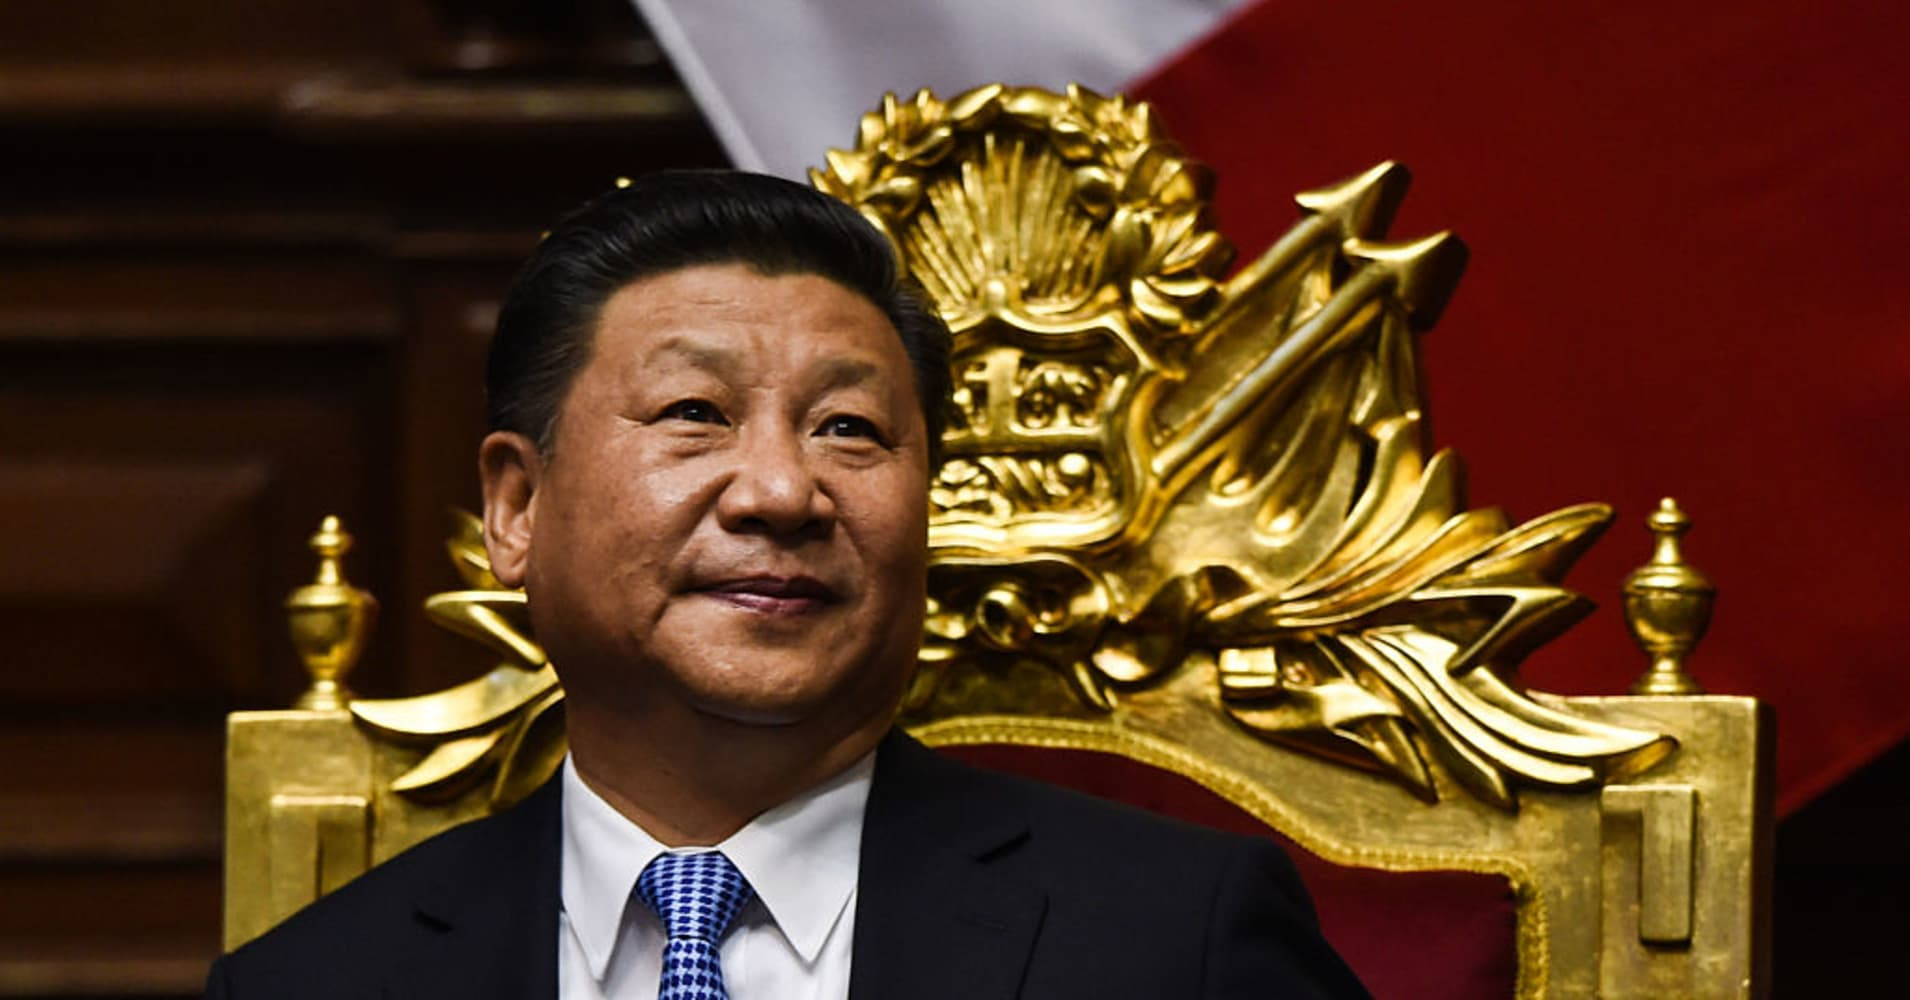 China's president Xi Jinping takes to the stage at World ...